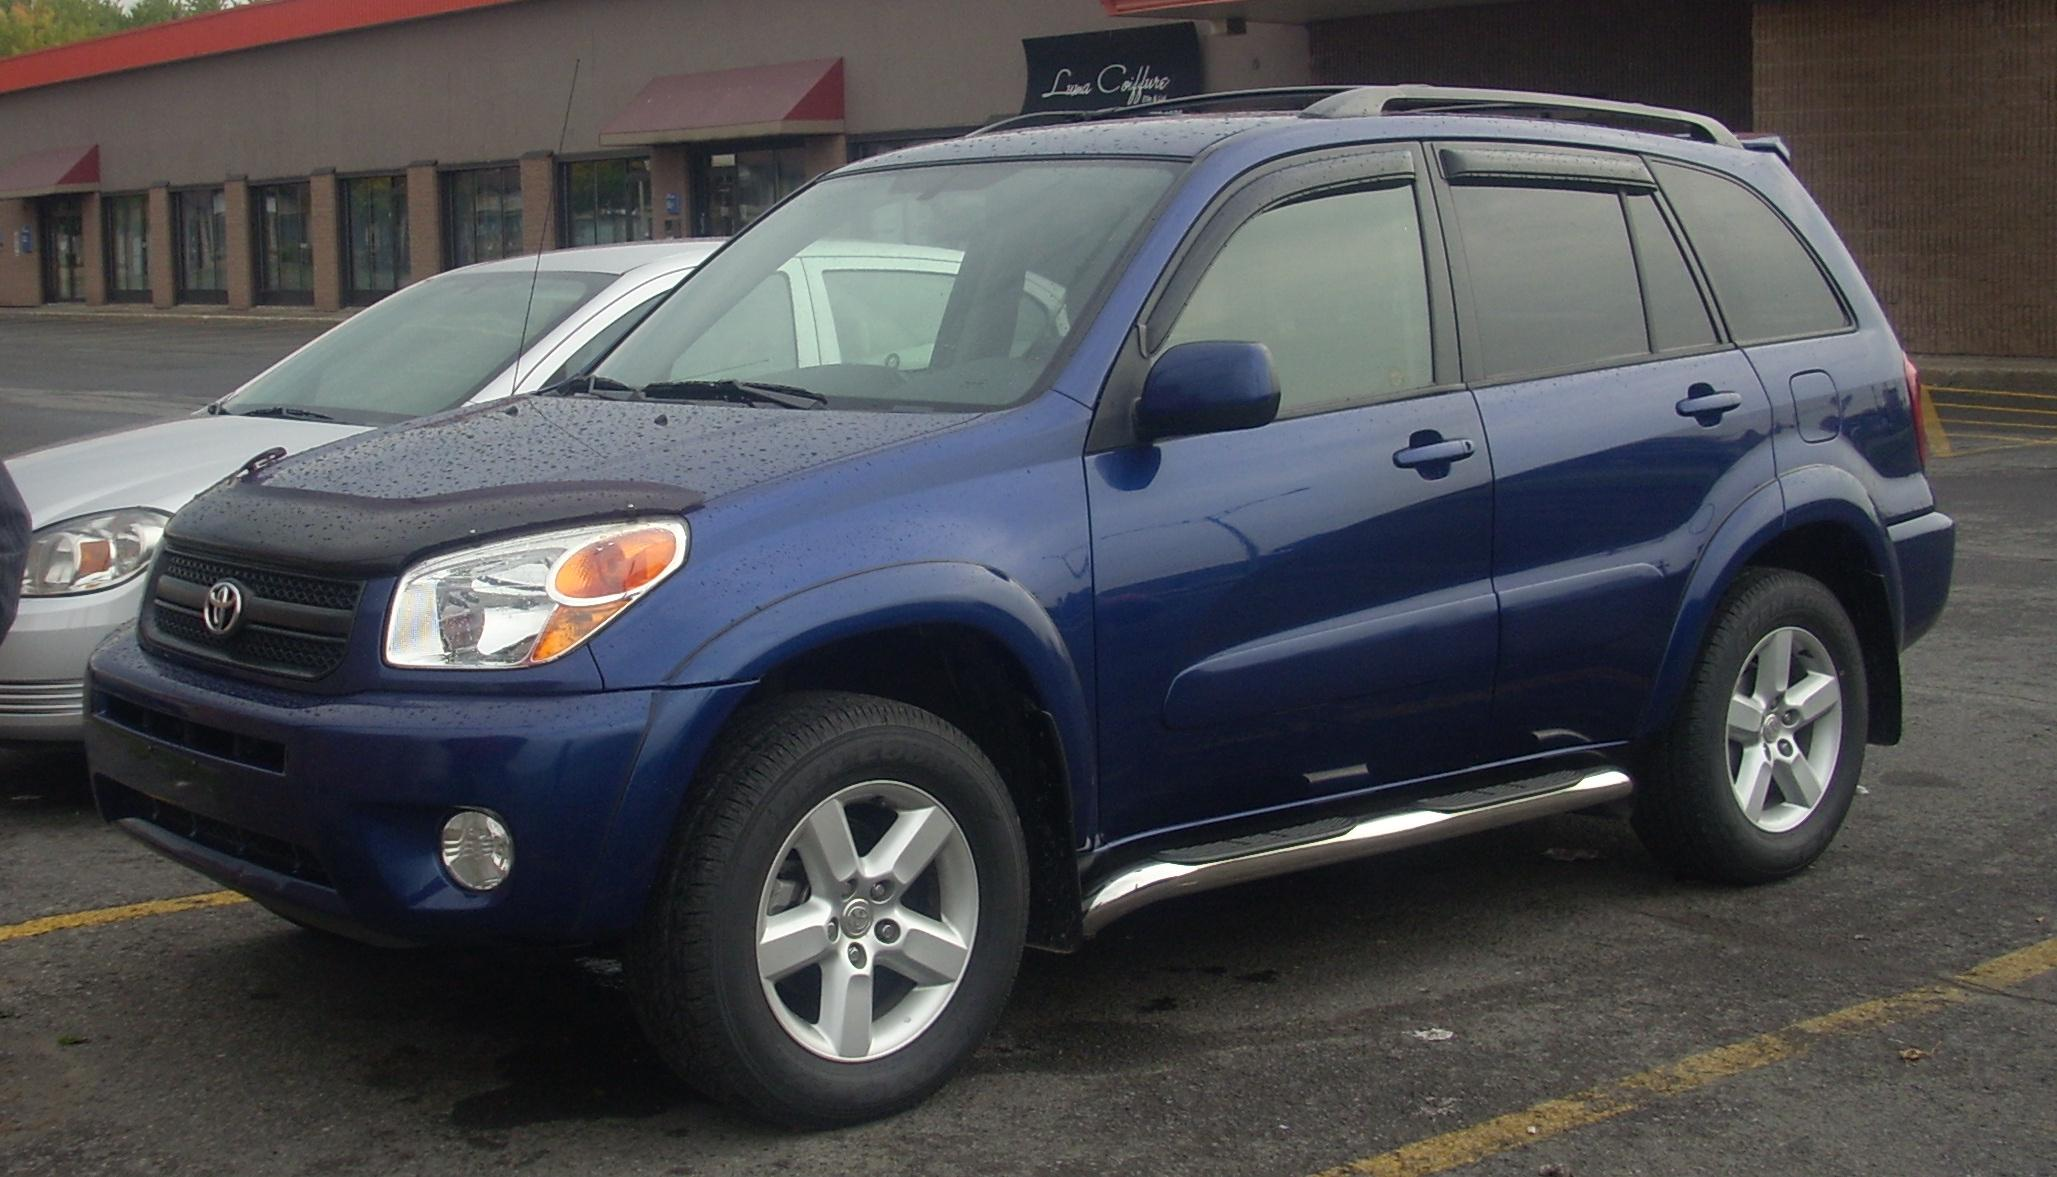 Toyota RAV4 2004 photo - 1